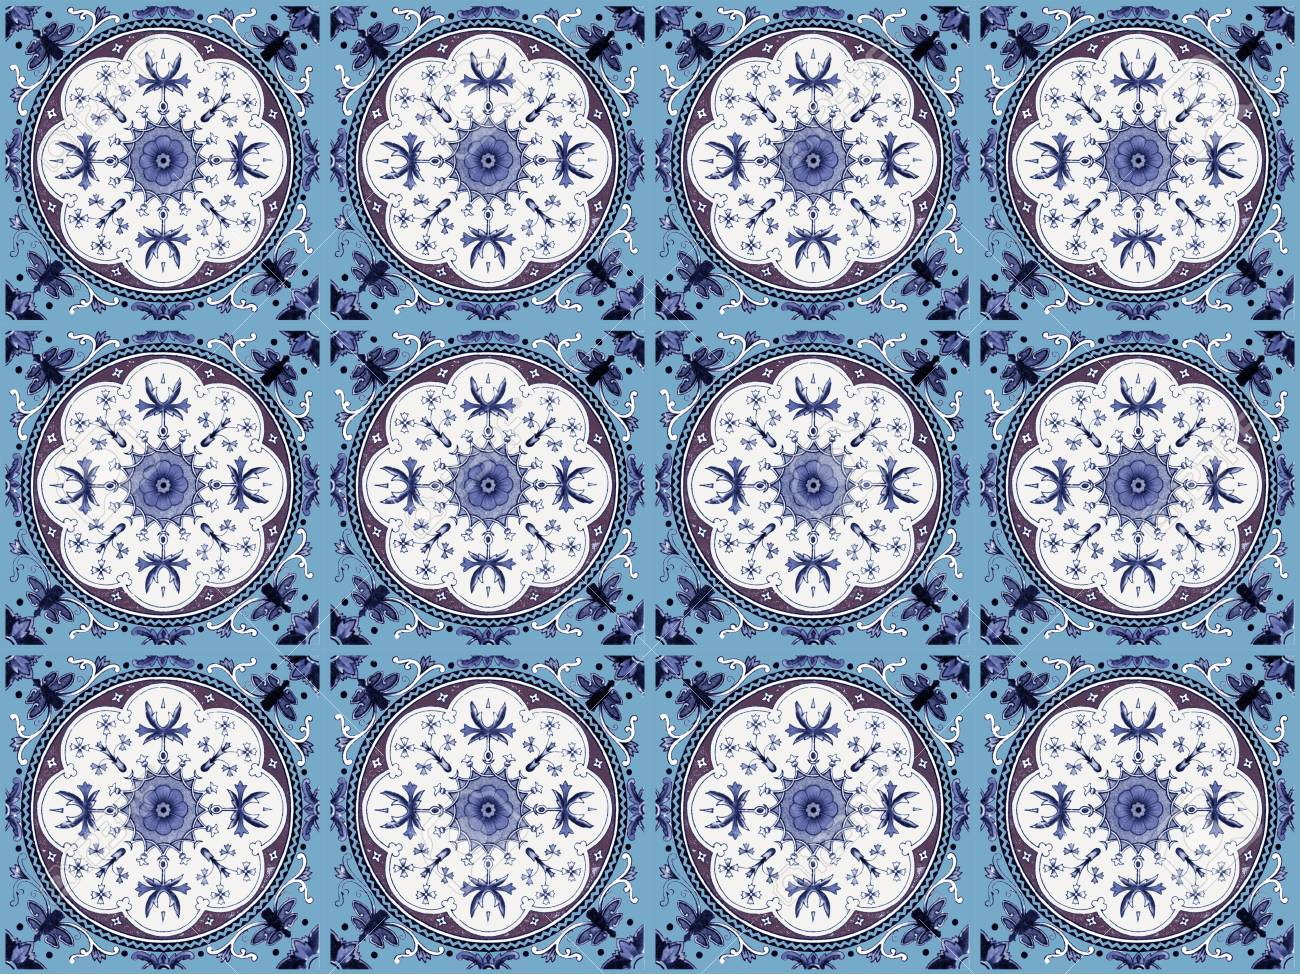 Moroccan Tile Pattern Background.Colorful Vintage Ceramic Tiles ...